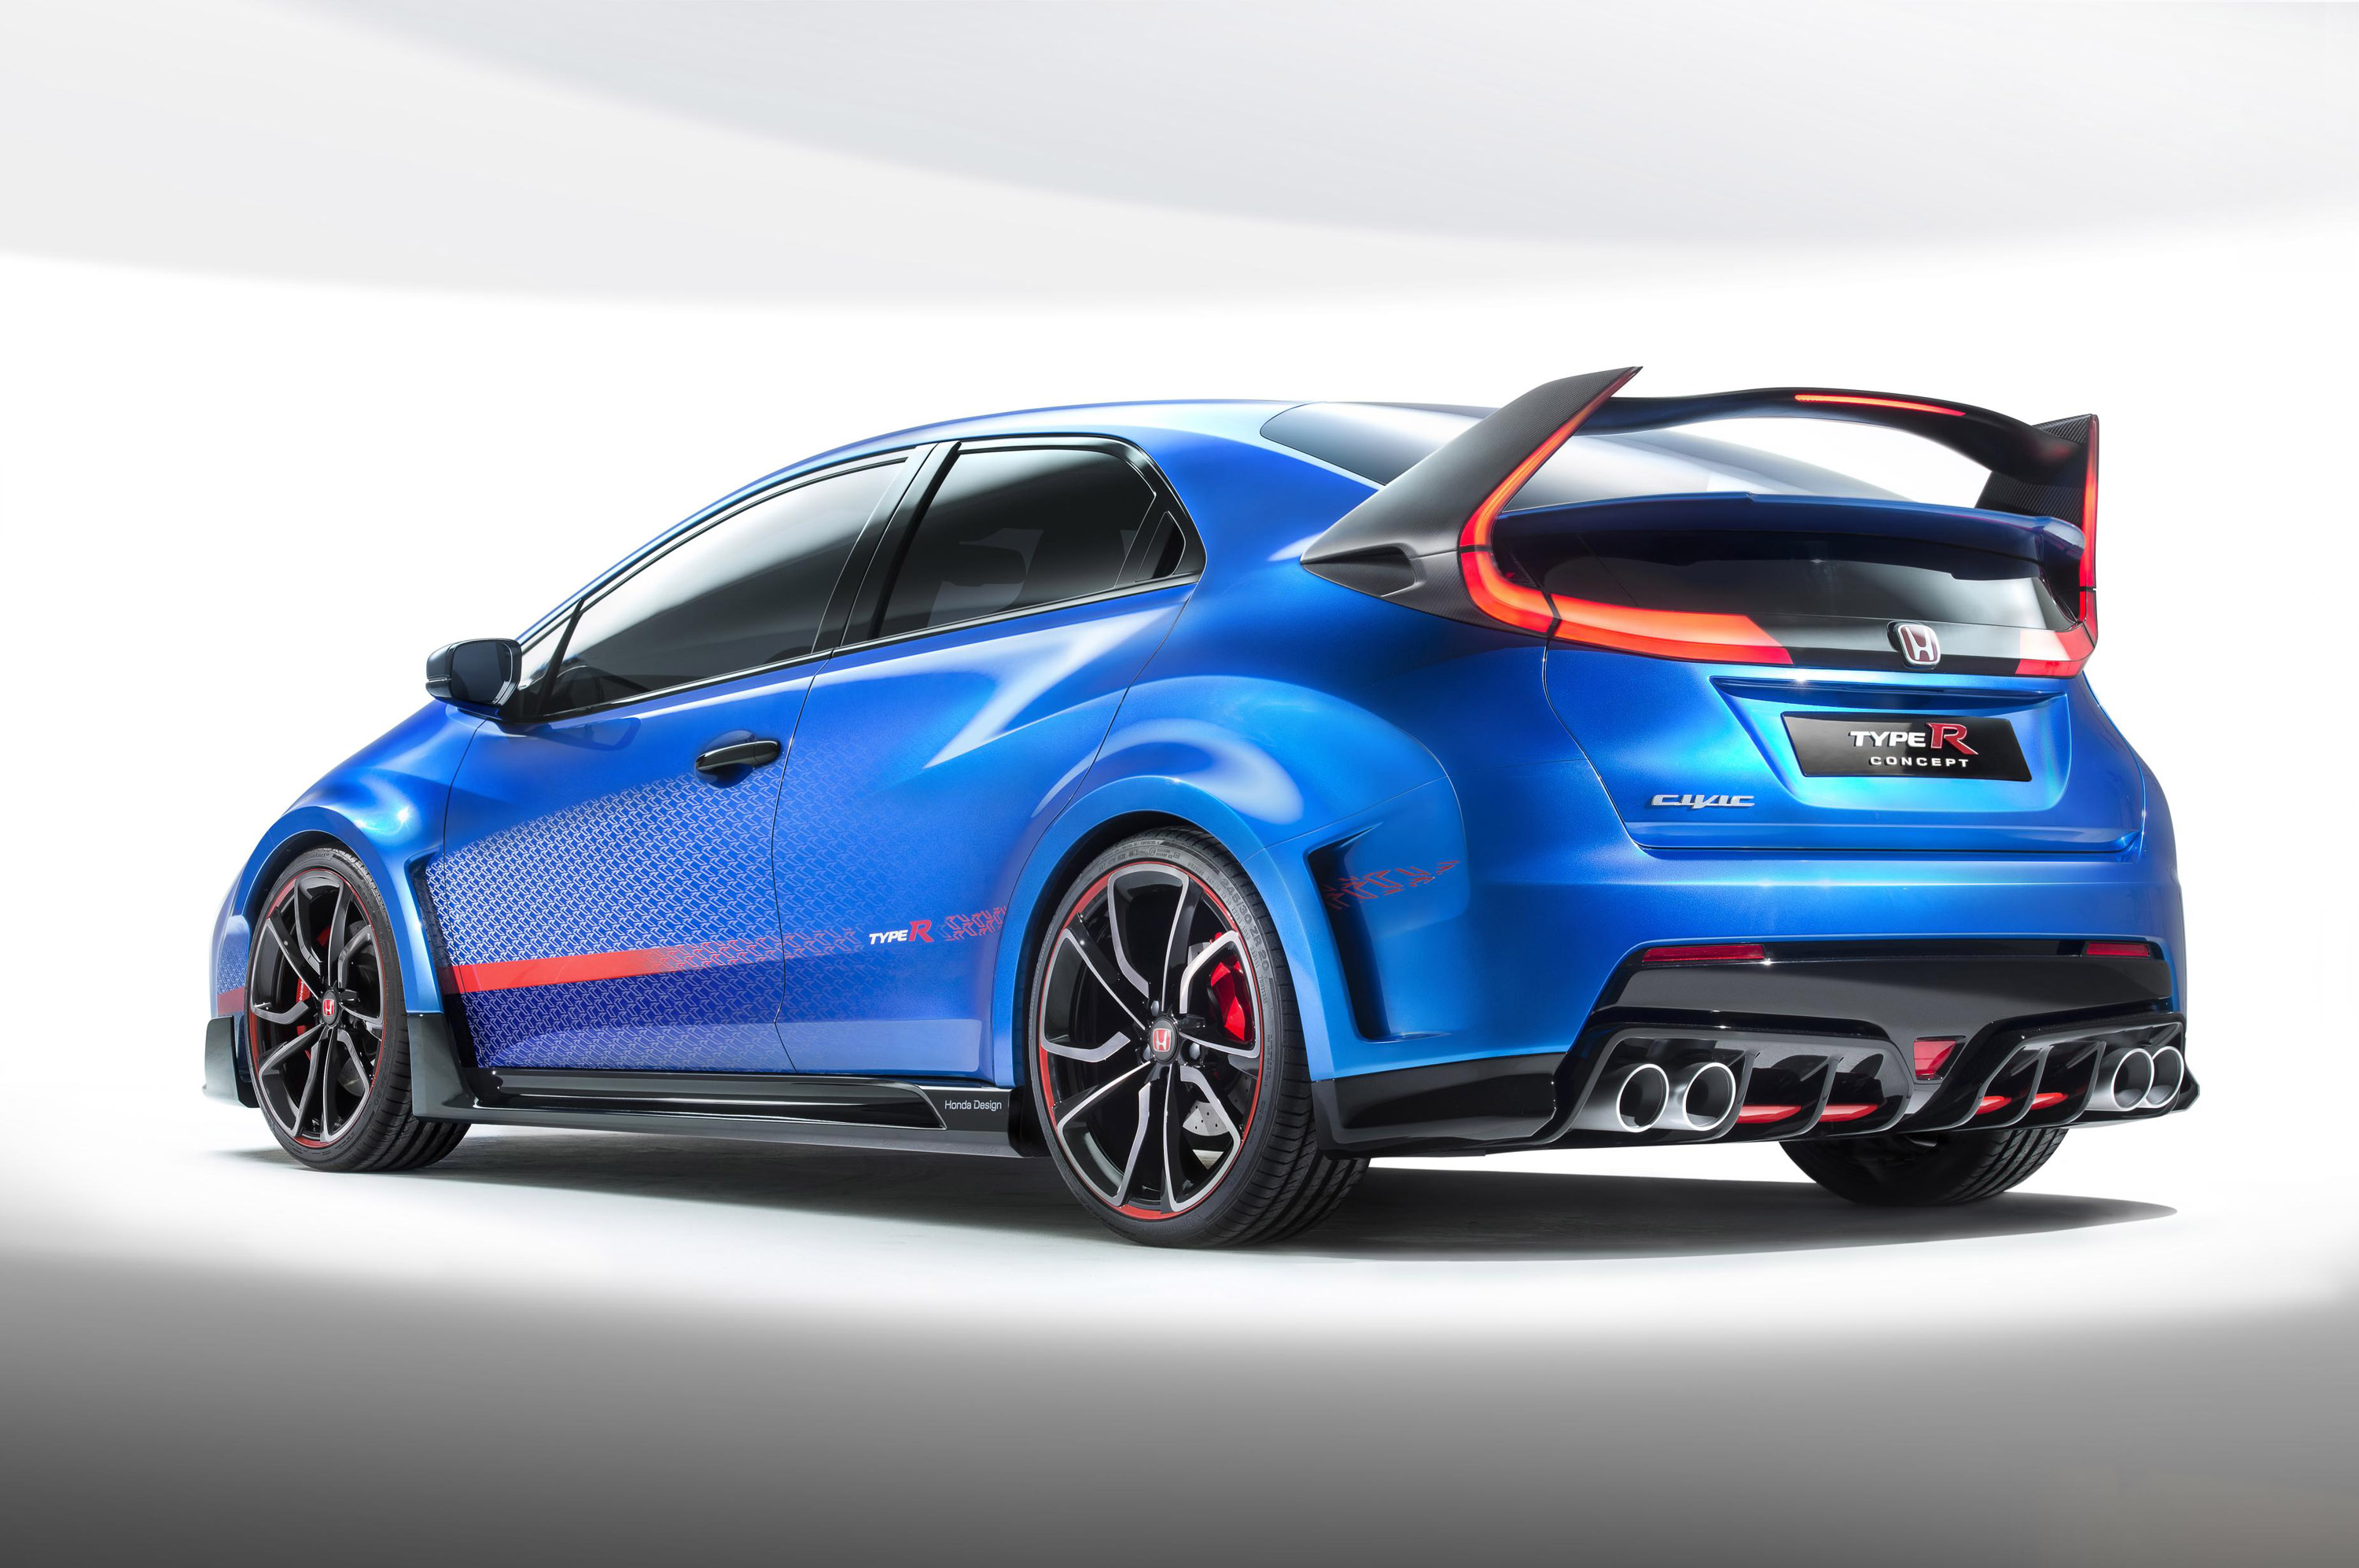 2015 civic type r presents honda 39 s other side video. Black Bedroom Furniture Sets. Home Design Ideas